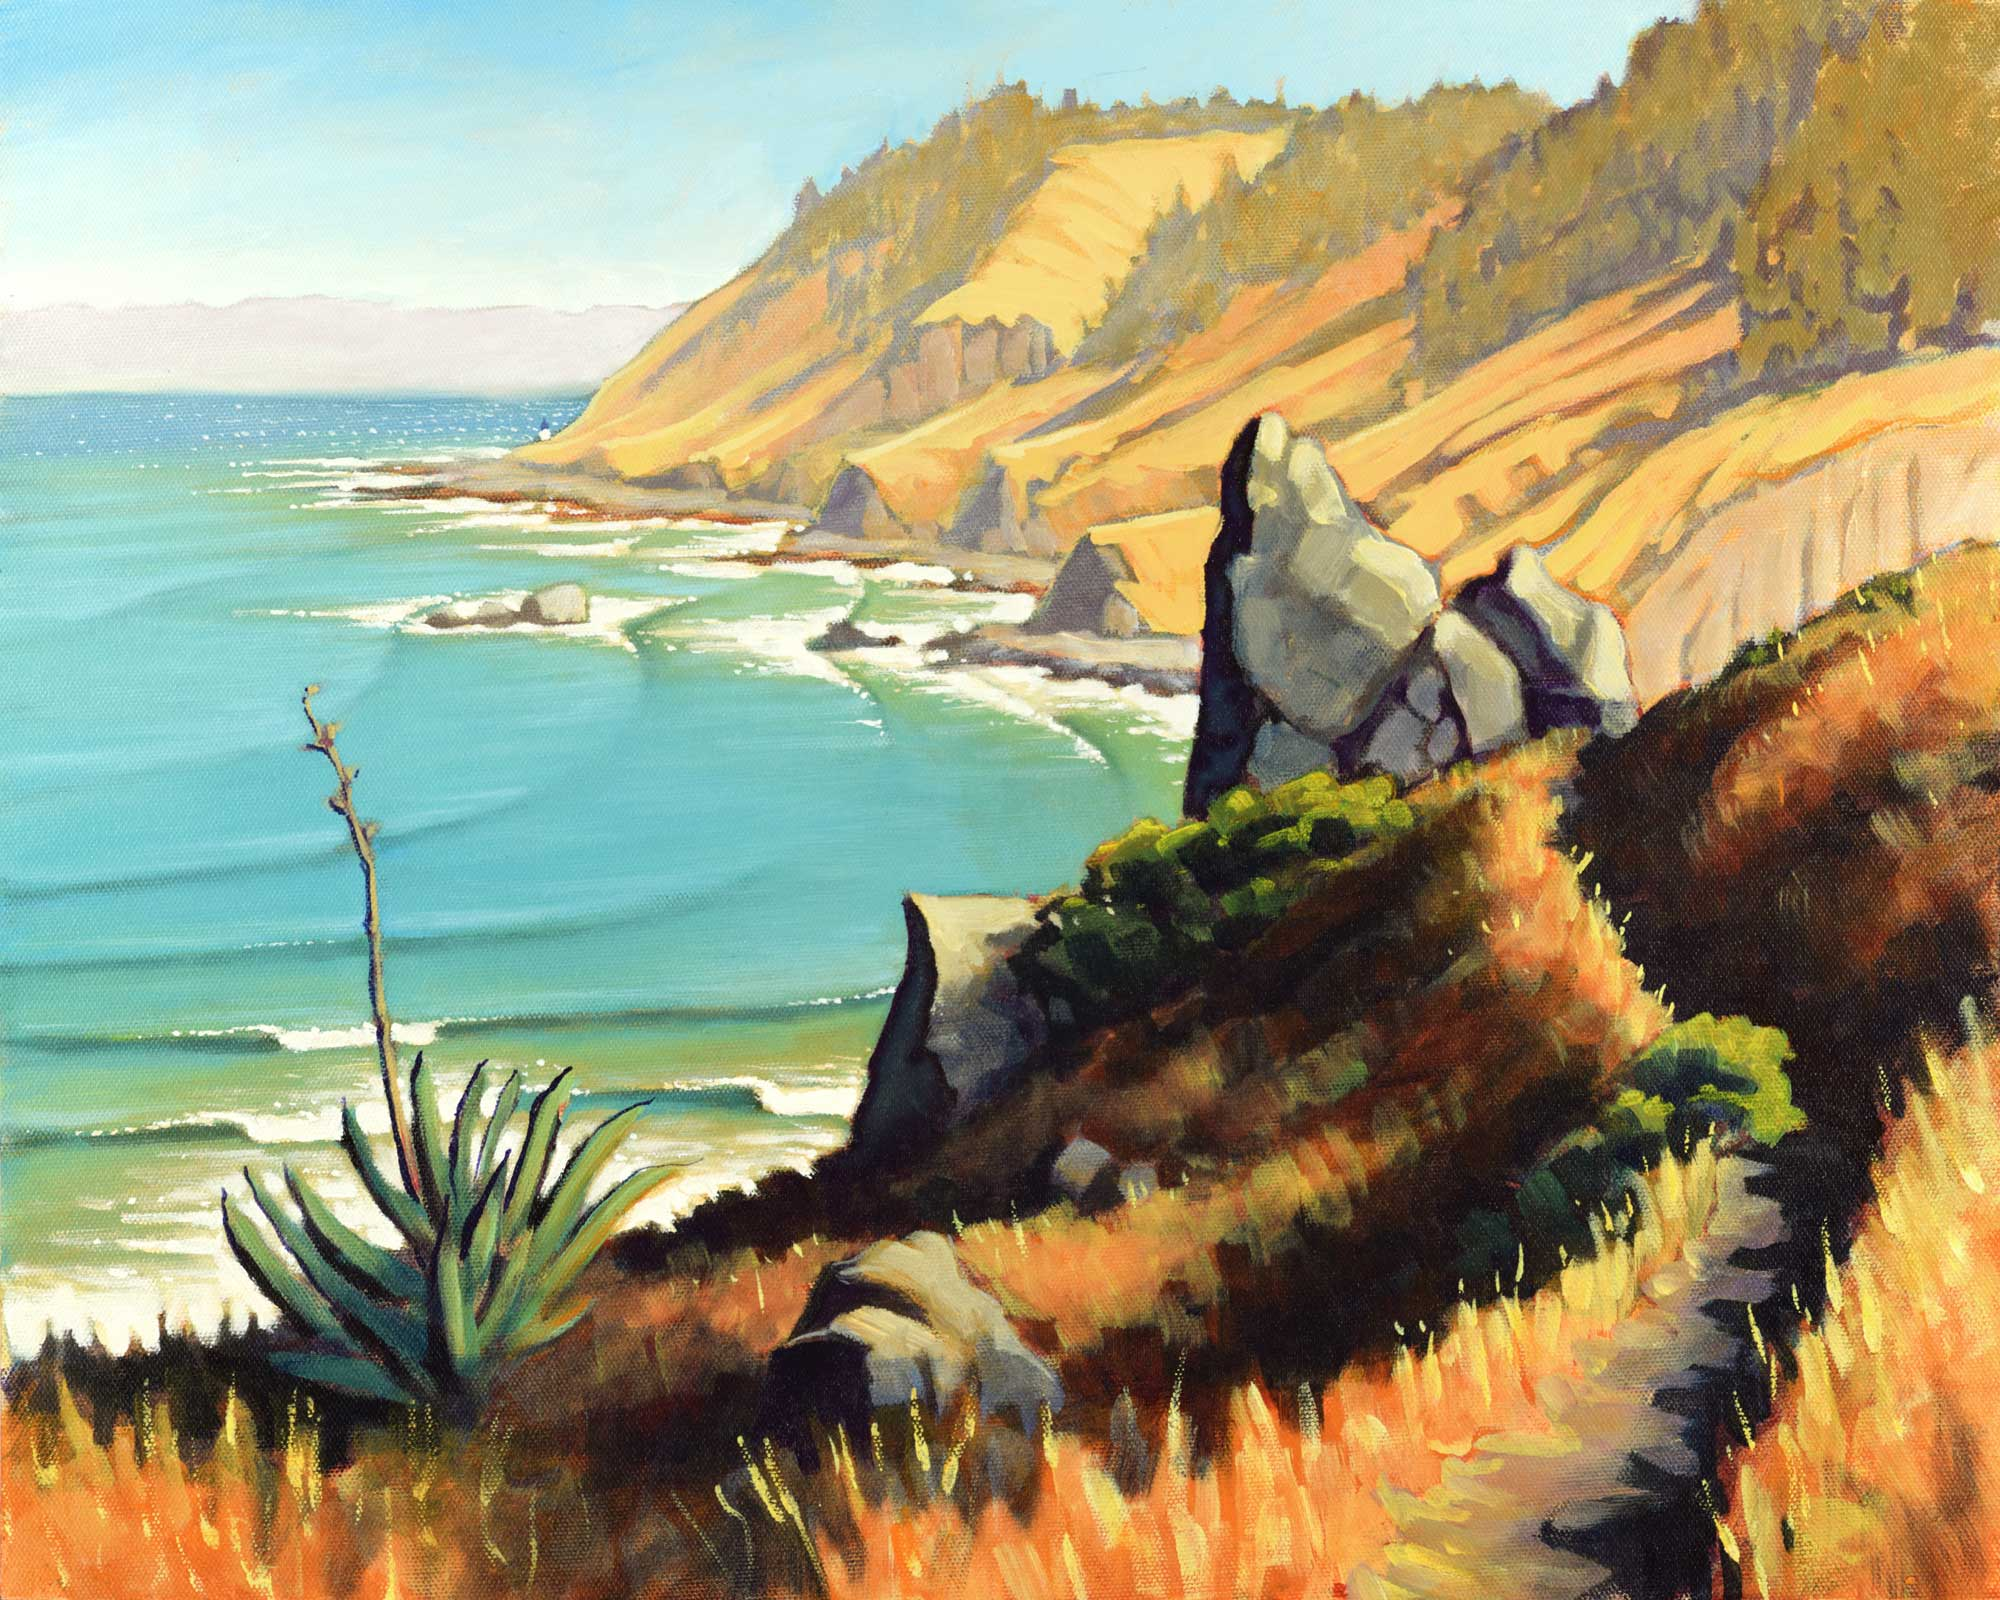 A plein air landscape from the Lost Coast Trail overlooking Punta Gorda on the Humboldt coast of northern California